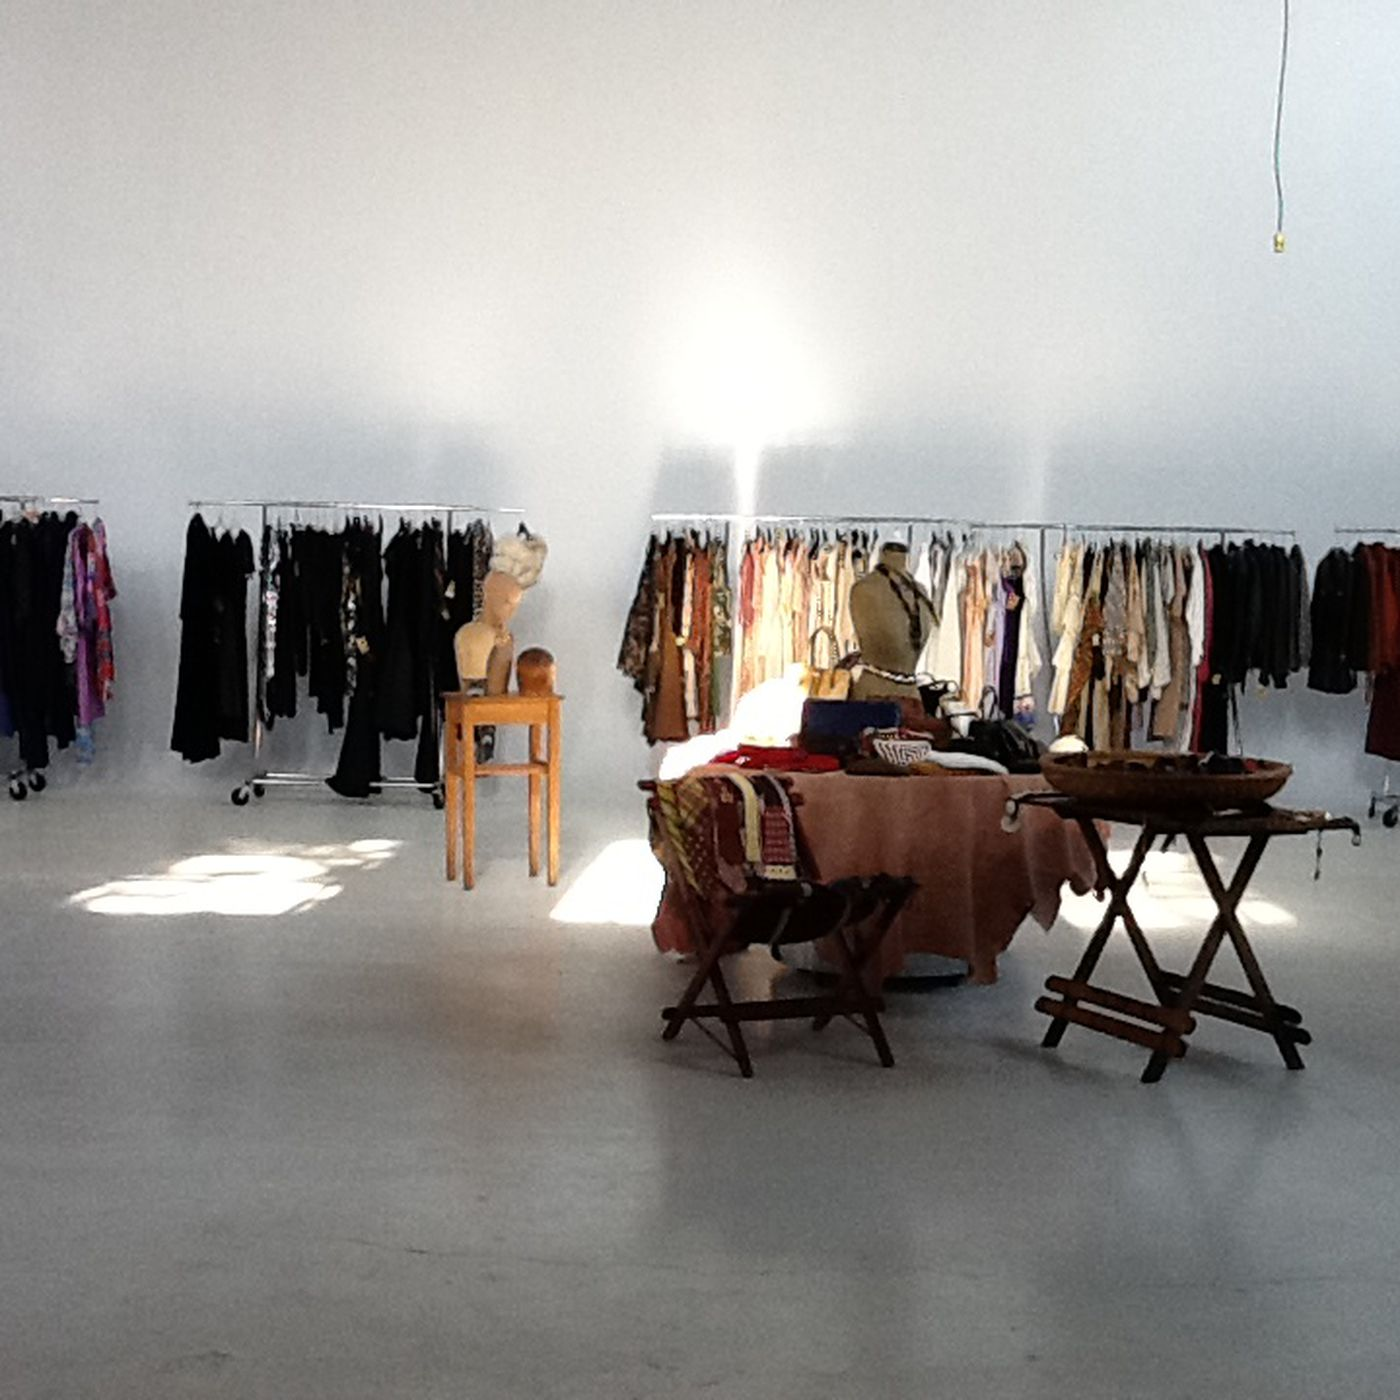 d1b24998 Presenting: The 38 Best Vintage Shopping Experiences in Chicago ...